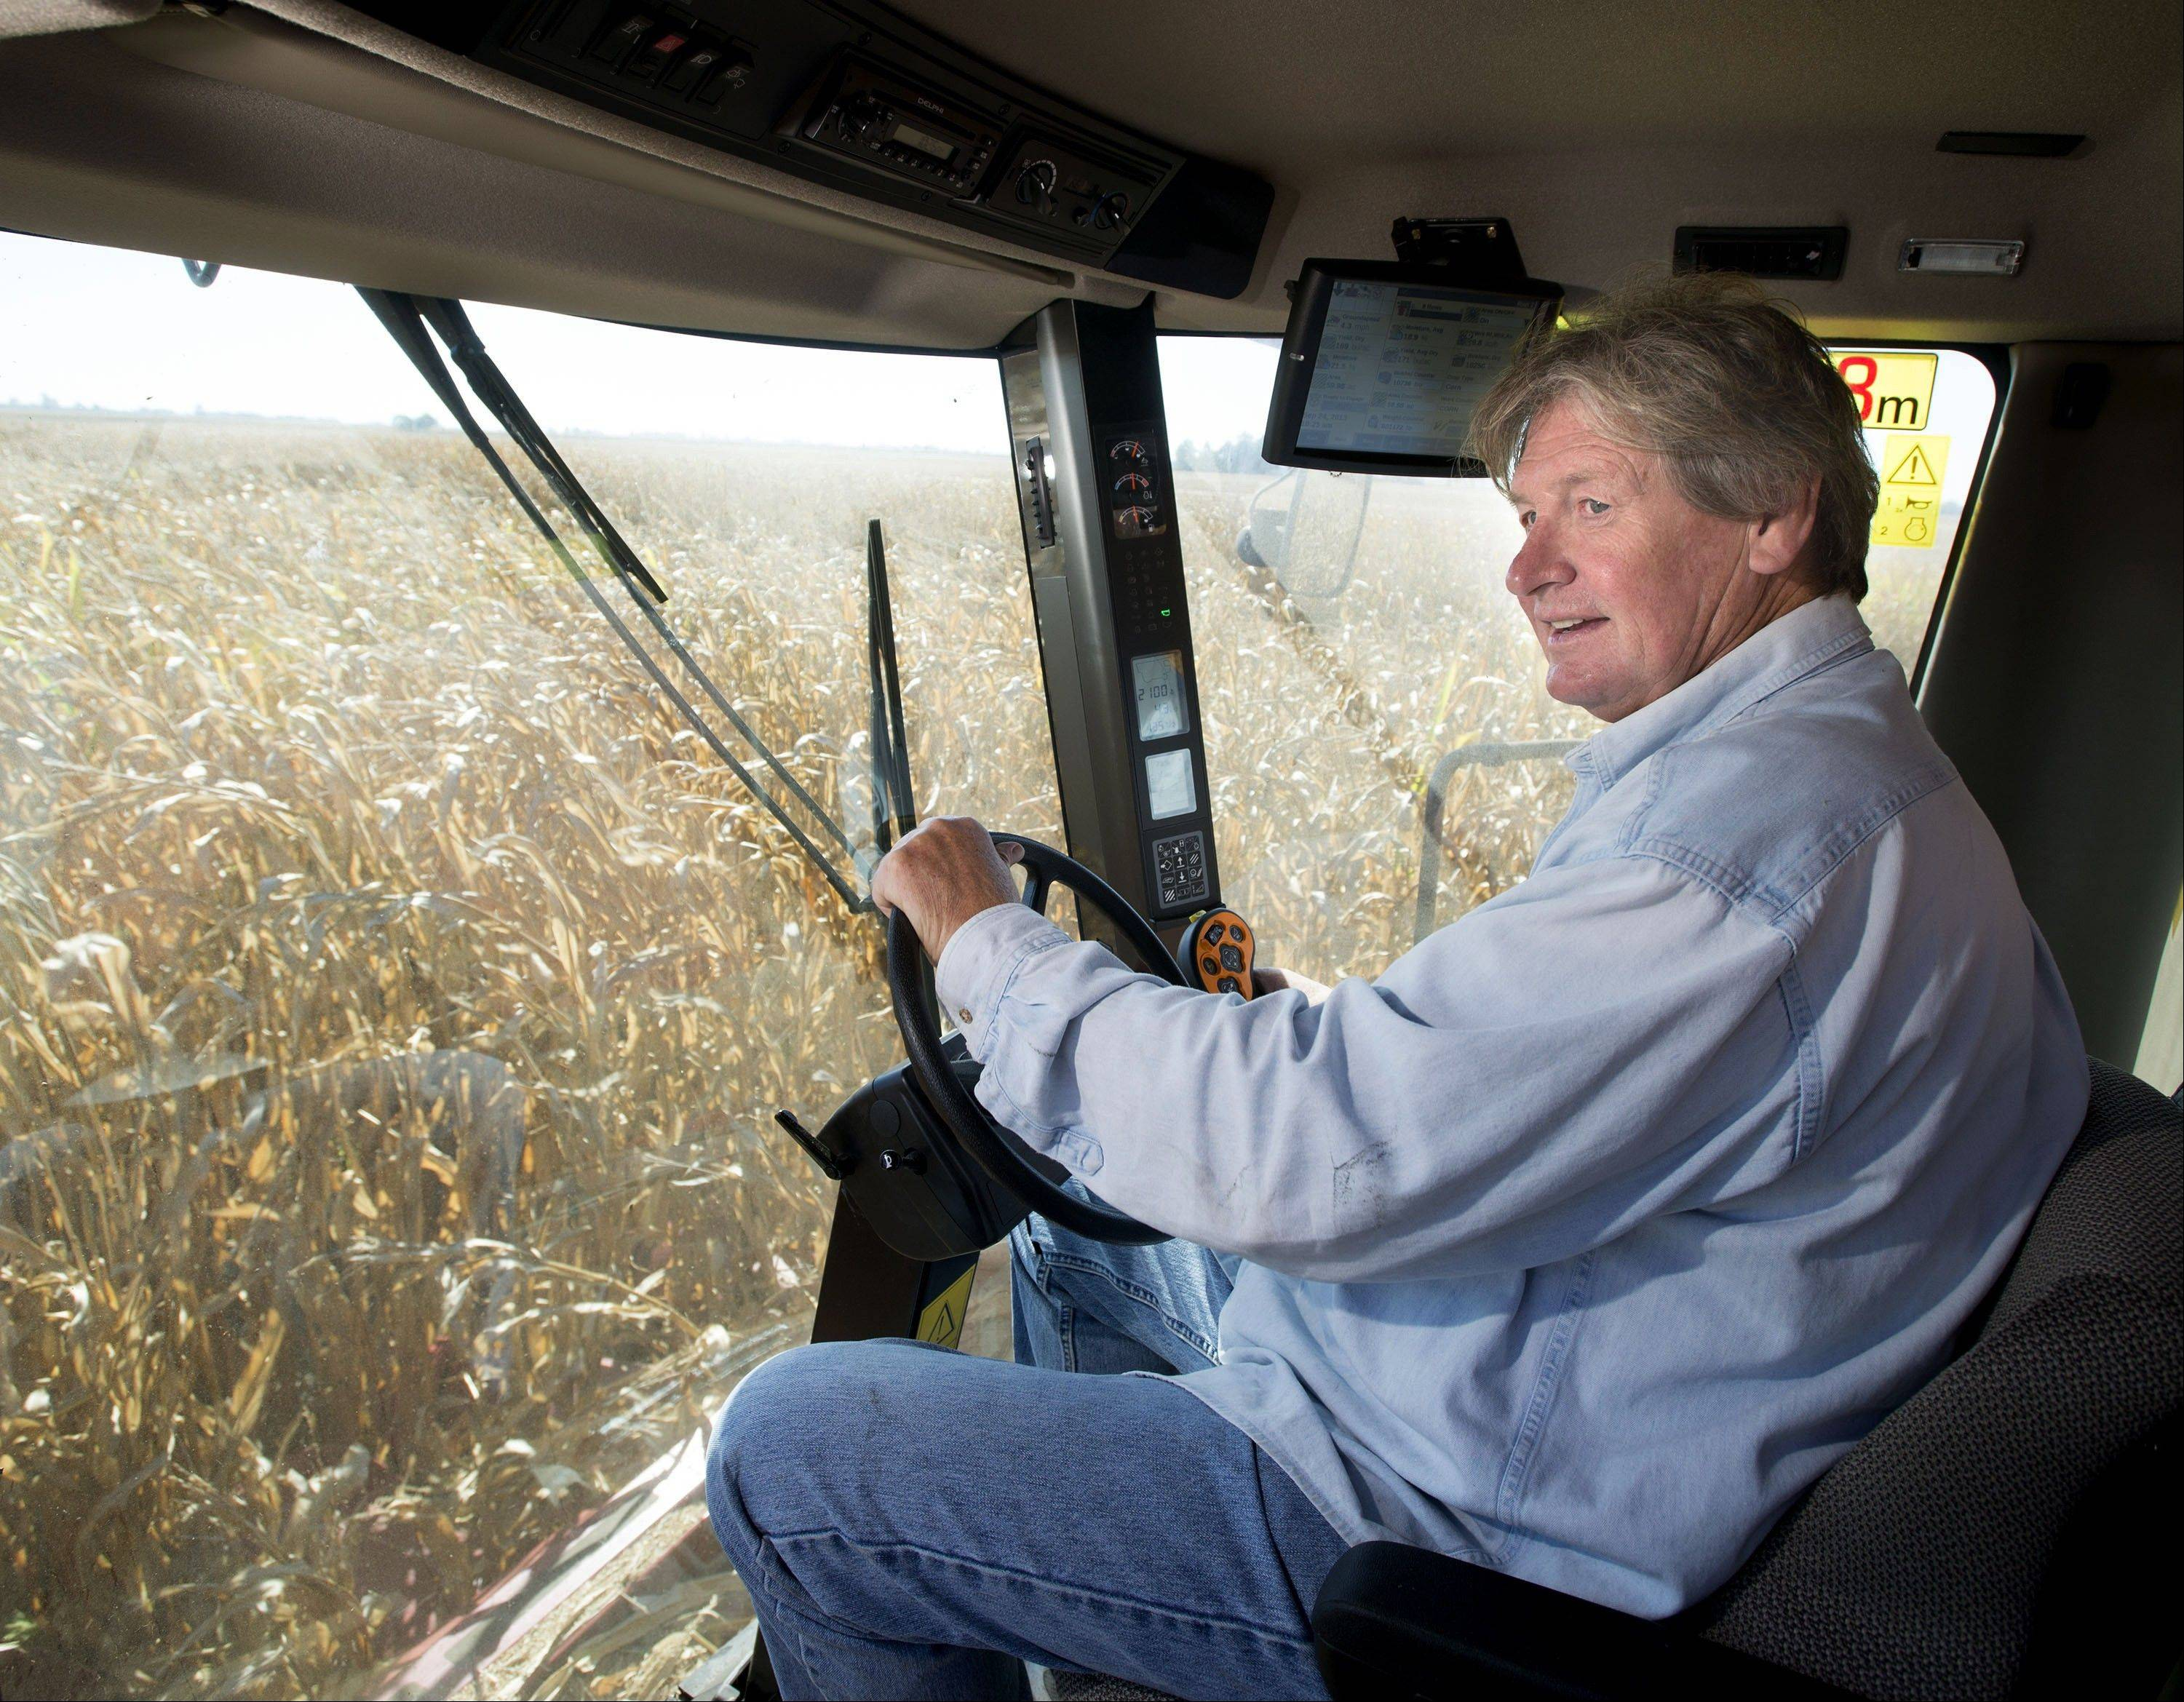 Rick Schmidt drives a combine Tuesday through an 80-acre corn field two miles west of Thomasboro, Ill. Farmers planted the most corn in 80 years this year, and favorable weather, compared to last year's drought, has boosted the chances of a good harvest.